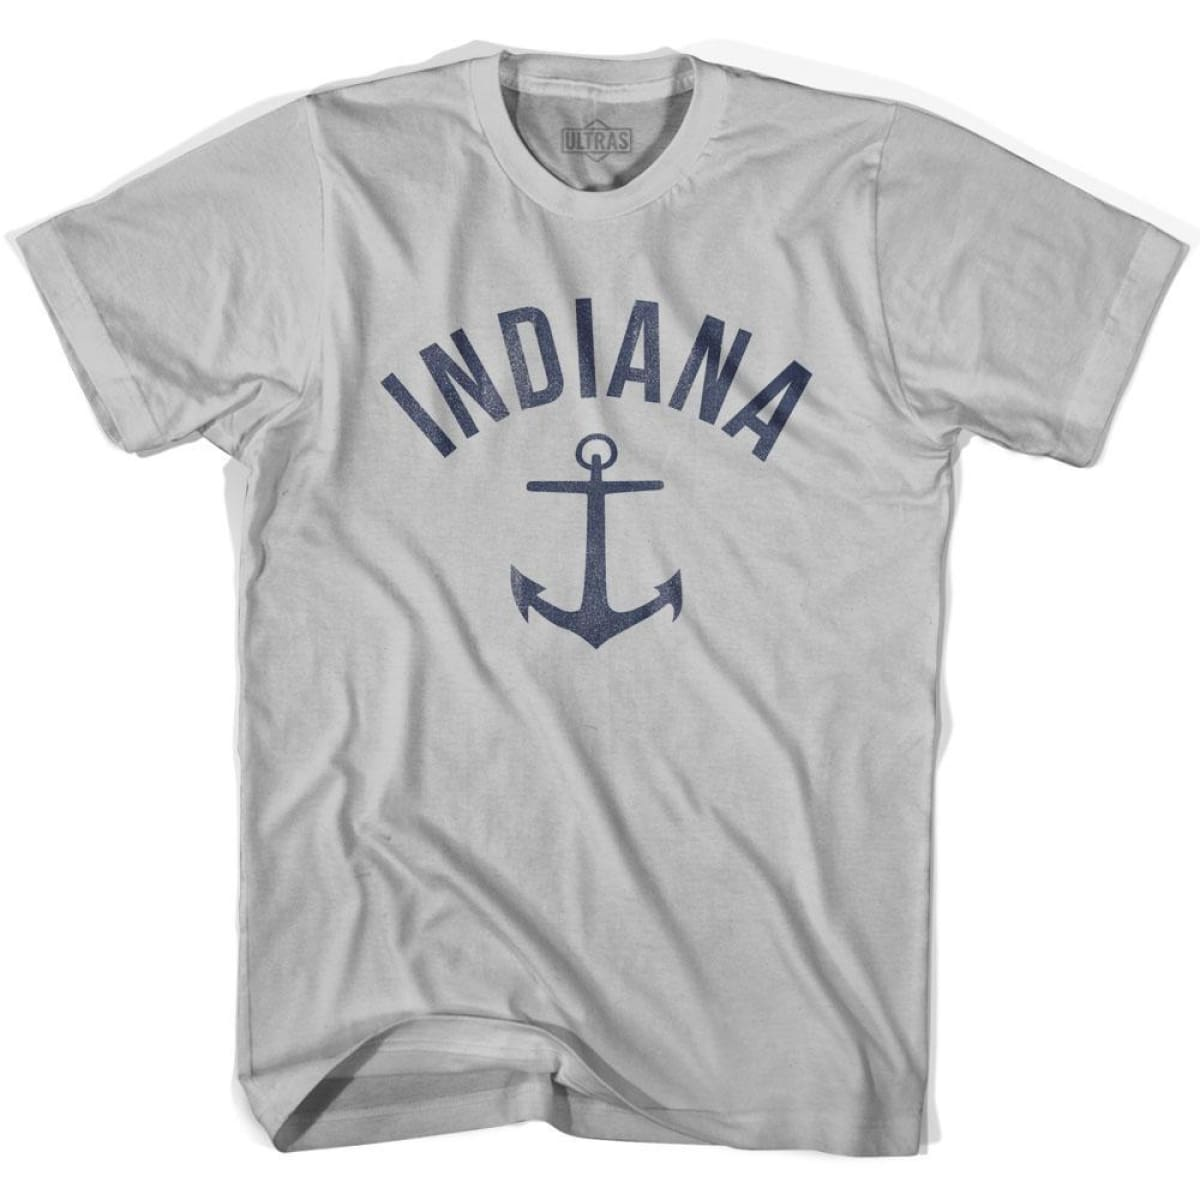 Indiana State Anchor Home Cotton Adult T-shirt - Cool Grey / Adult Small - Anchor Home